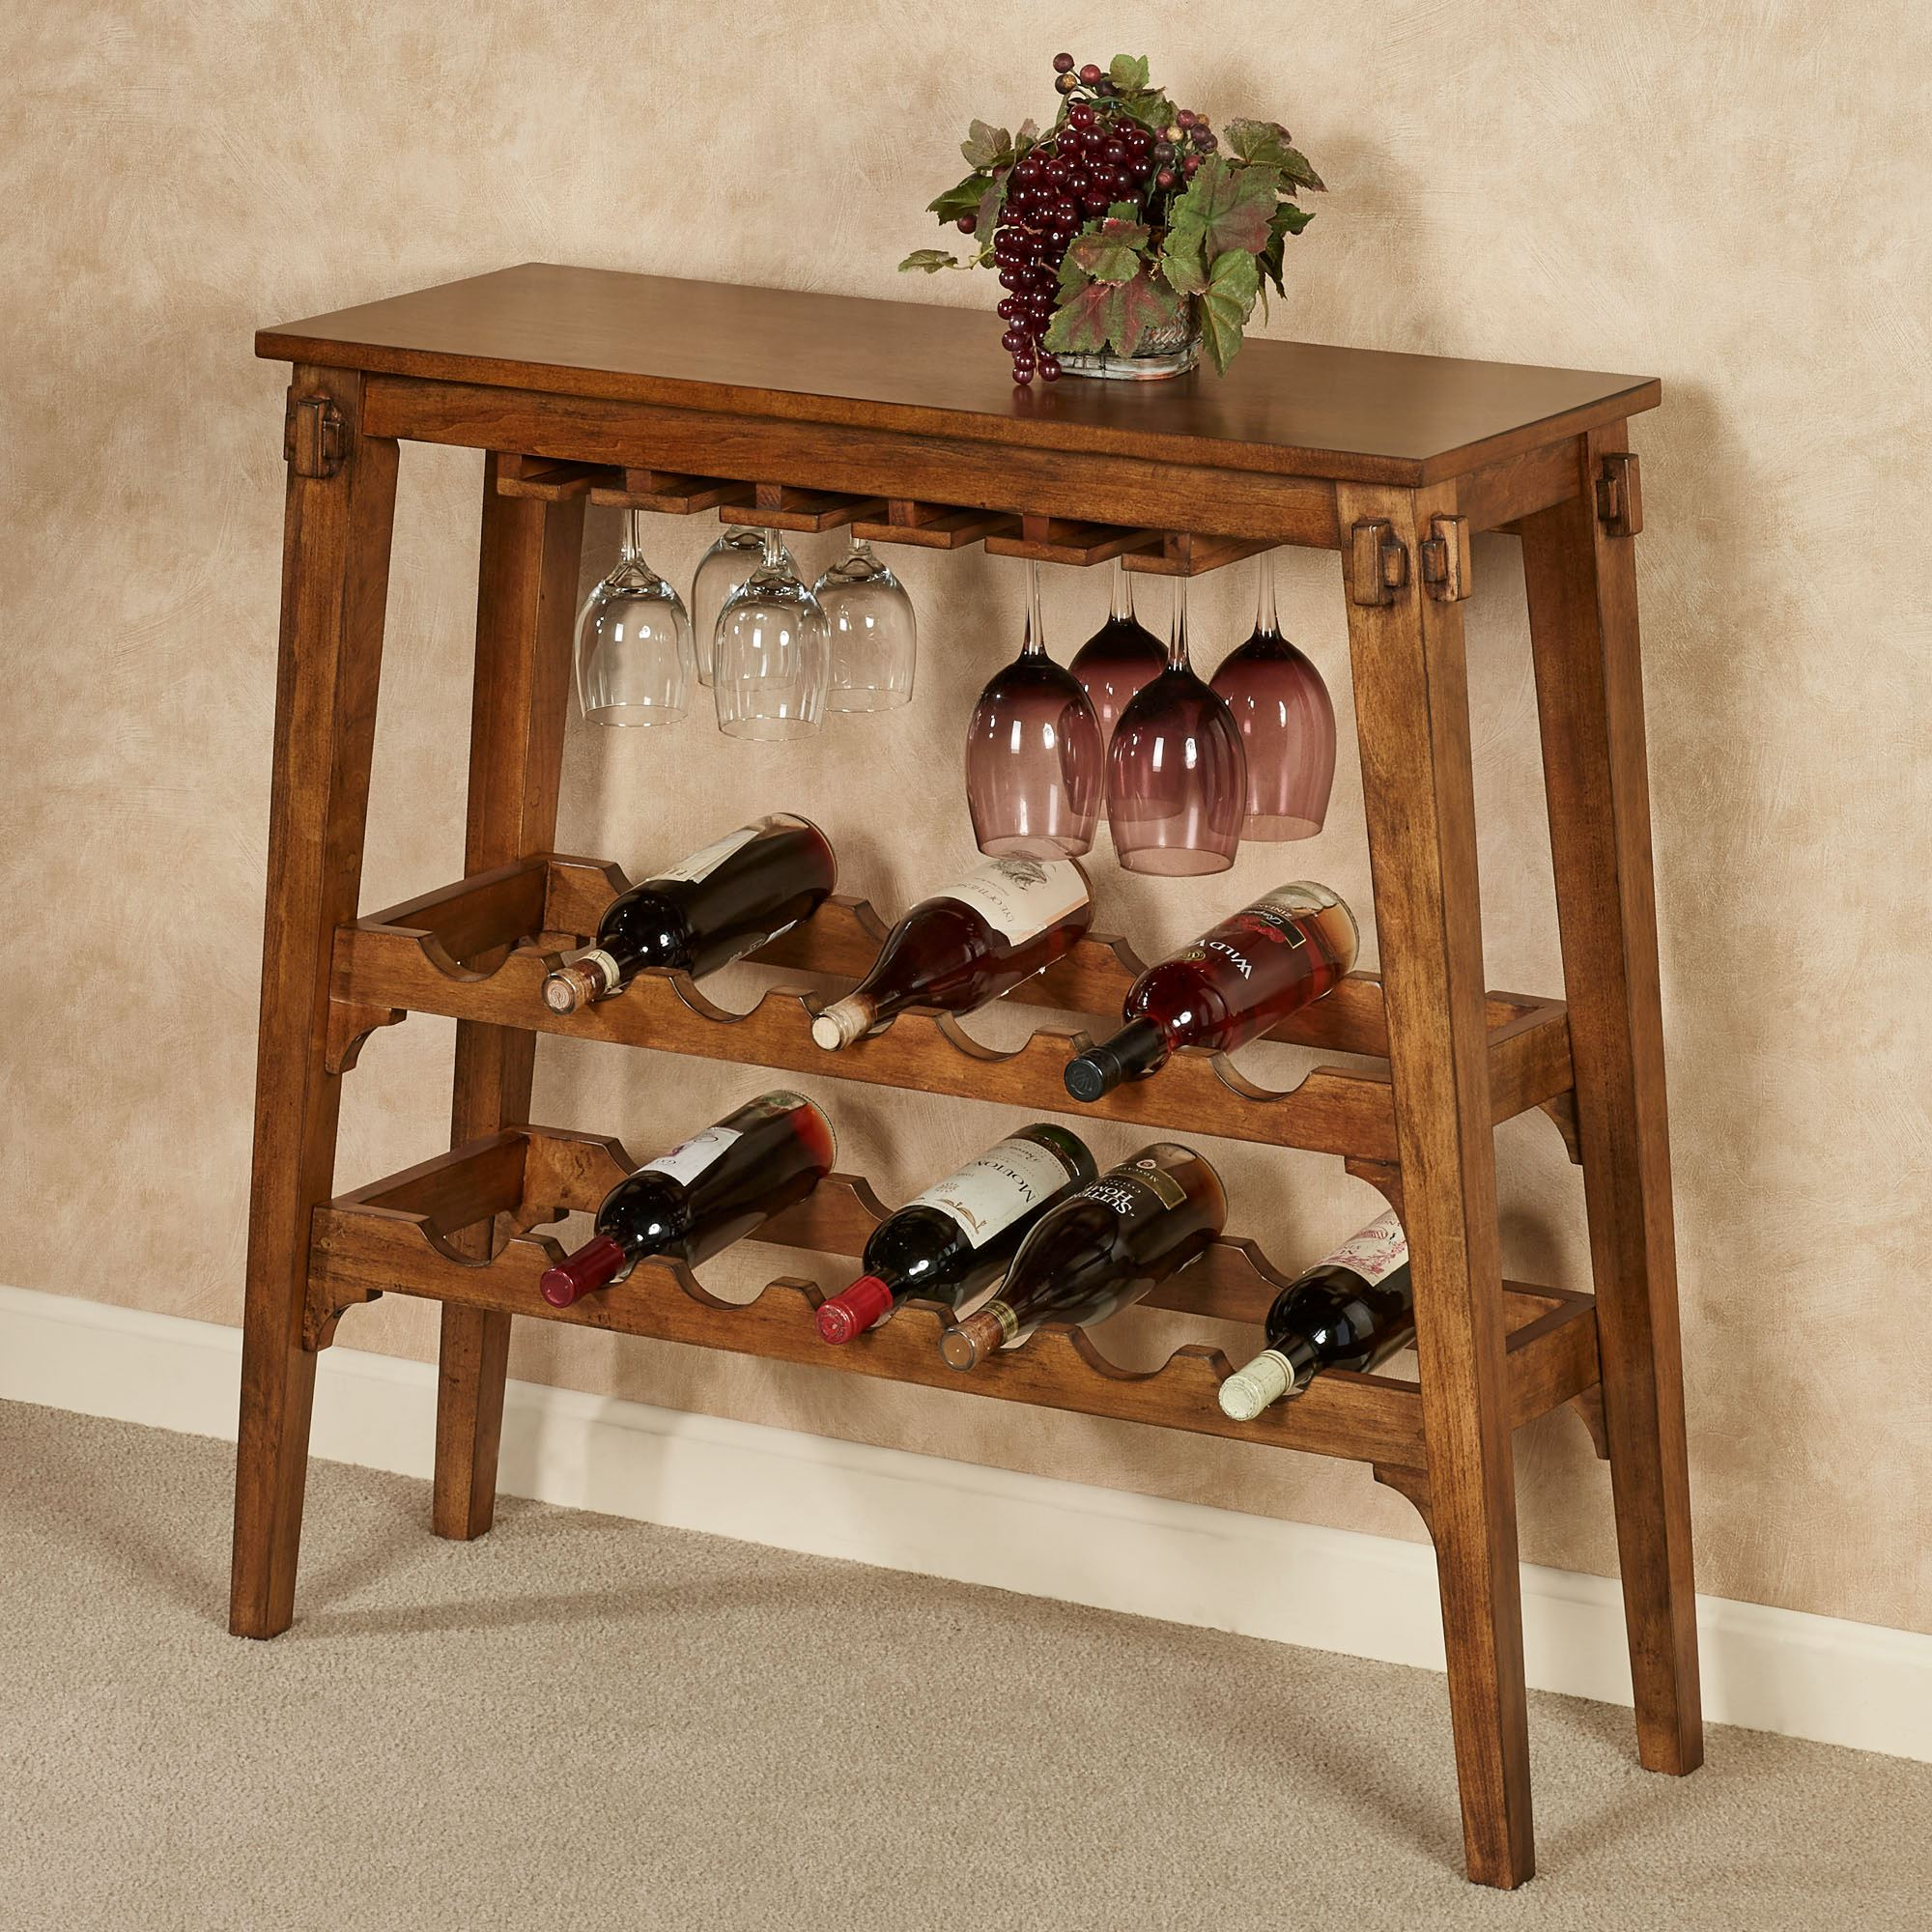 Kitchen Table With Wine Rack: Vernazza Wine Rack Table